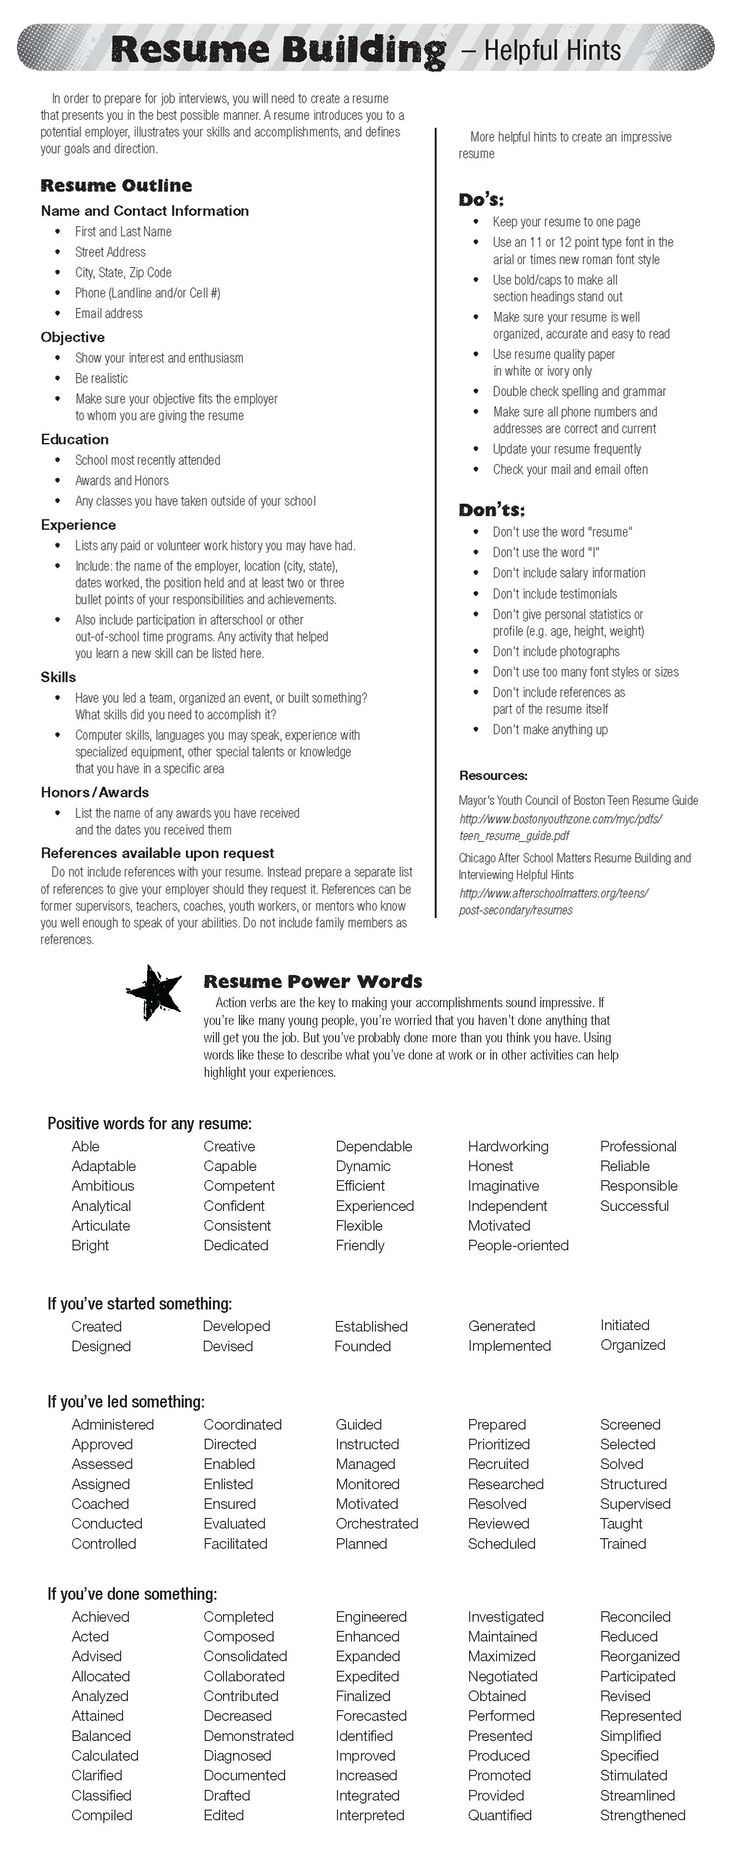 Opposenewapstandardsus  Unique  Ideas About Resume On Pinterest  Cv Format Resume Cv And  With Marvelous  Ideas About Resume On Pinterest  Cv Format Resume Cv And Resume Templates With Amusing Urban Planning Resume Also Sample Resume For Retail Sales In Addition Case Manager Resume Samples And Picture In Resume As Well As Er Rn Resume Additionally Radio Personality Resume From Pinterestcom With Opposenewapstandardsus  Marvelous  Ideas About Resume On Pinterest  Cv Format Resume Cv And  With Amusing  Ideas About Resume On Pinterest  Cv Format Resume Cv And Resume Templates And Unique Urban Planning Resume Also Sample Resume For Retail Sales In Addition Case Manager Resume Samples From Pinterestcom